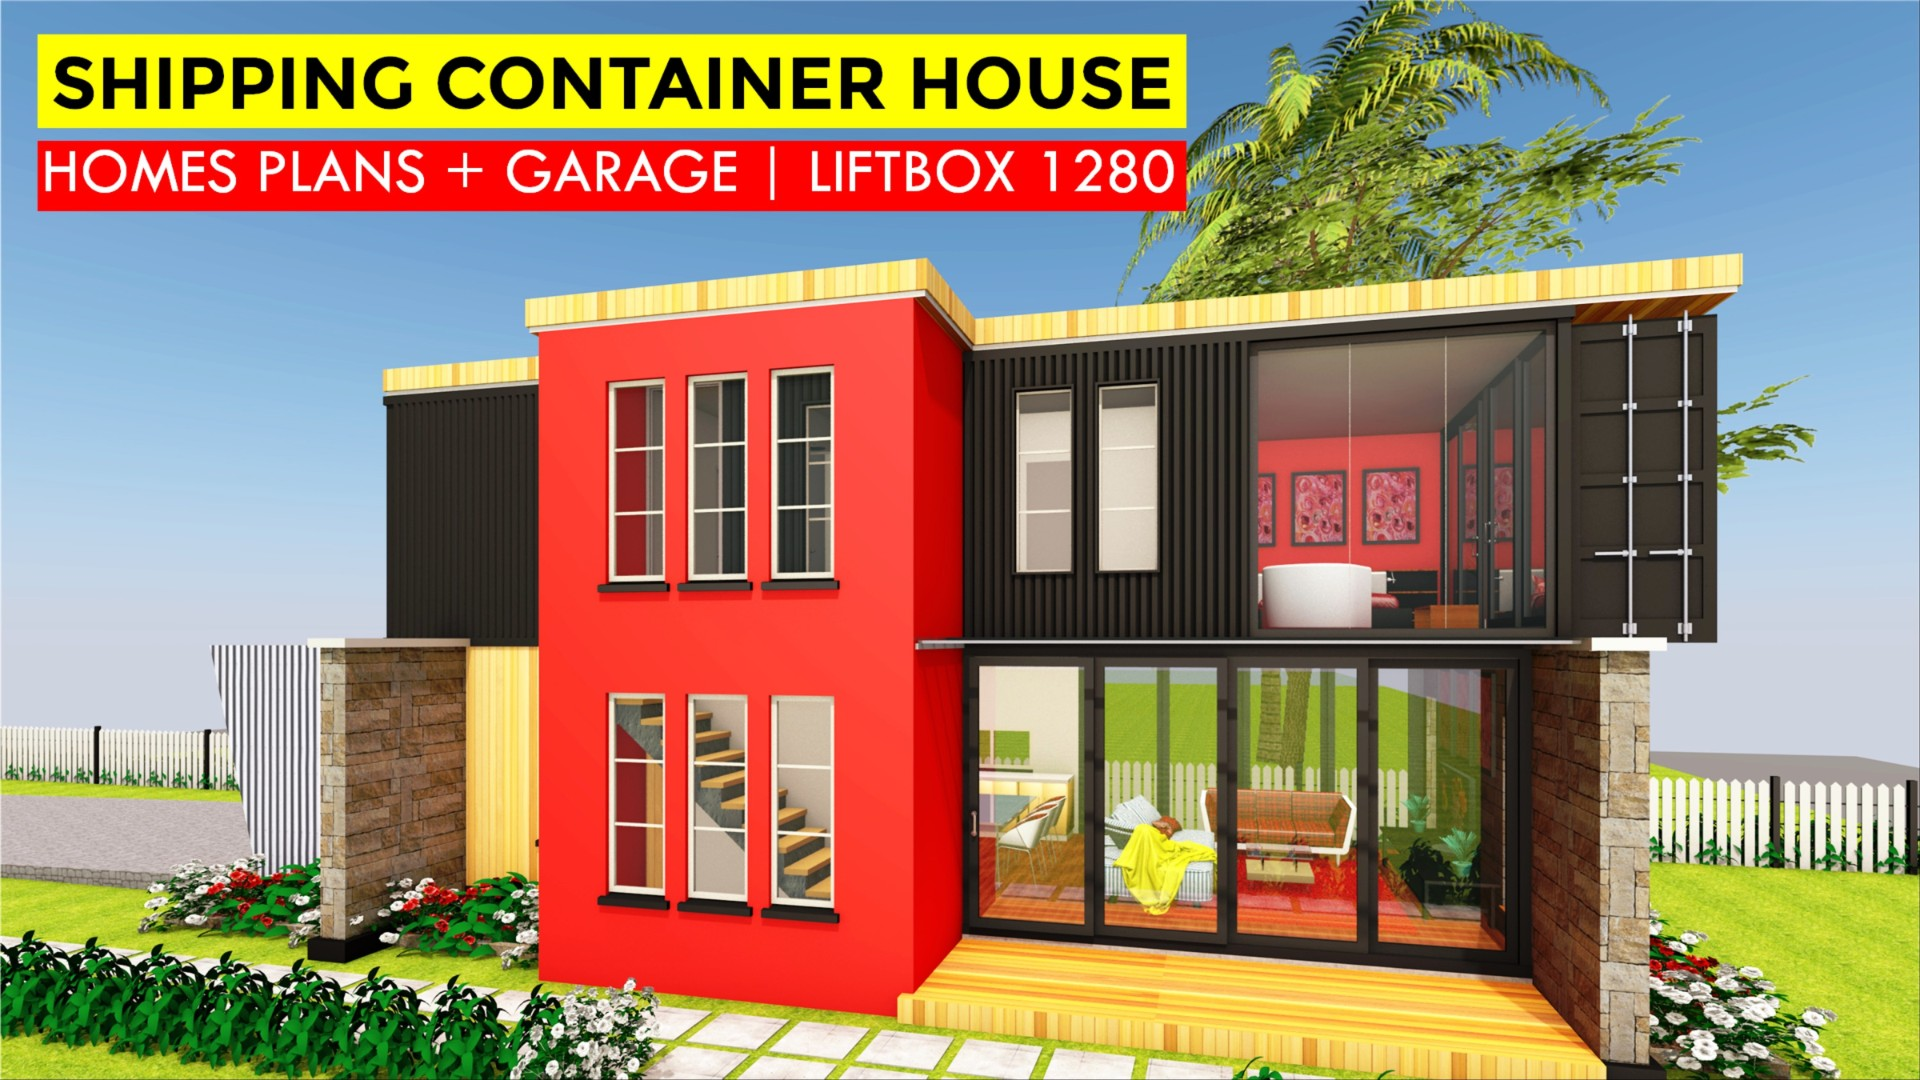 Modern Shipping Container Home liftbox 1280 | id. s23321280 | 3 beds | 3 baths | 1280+sft.|